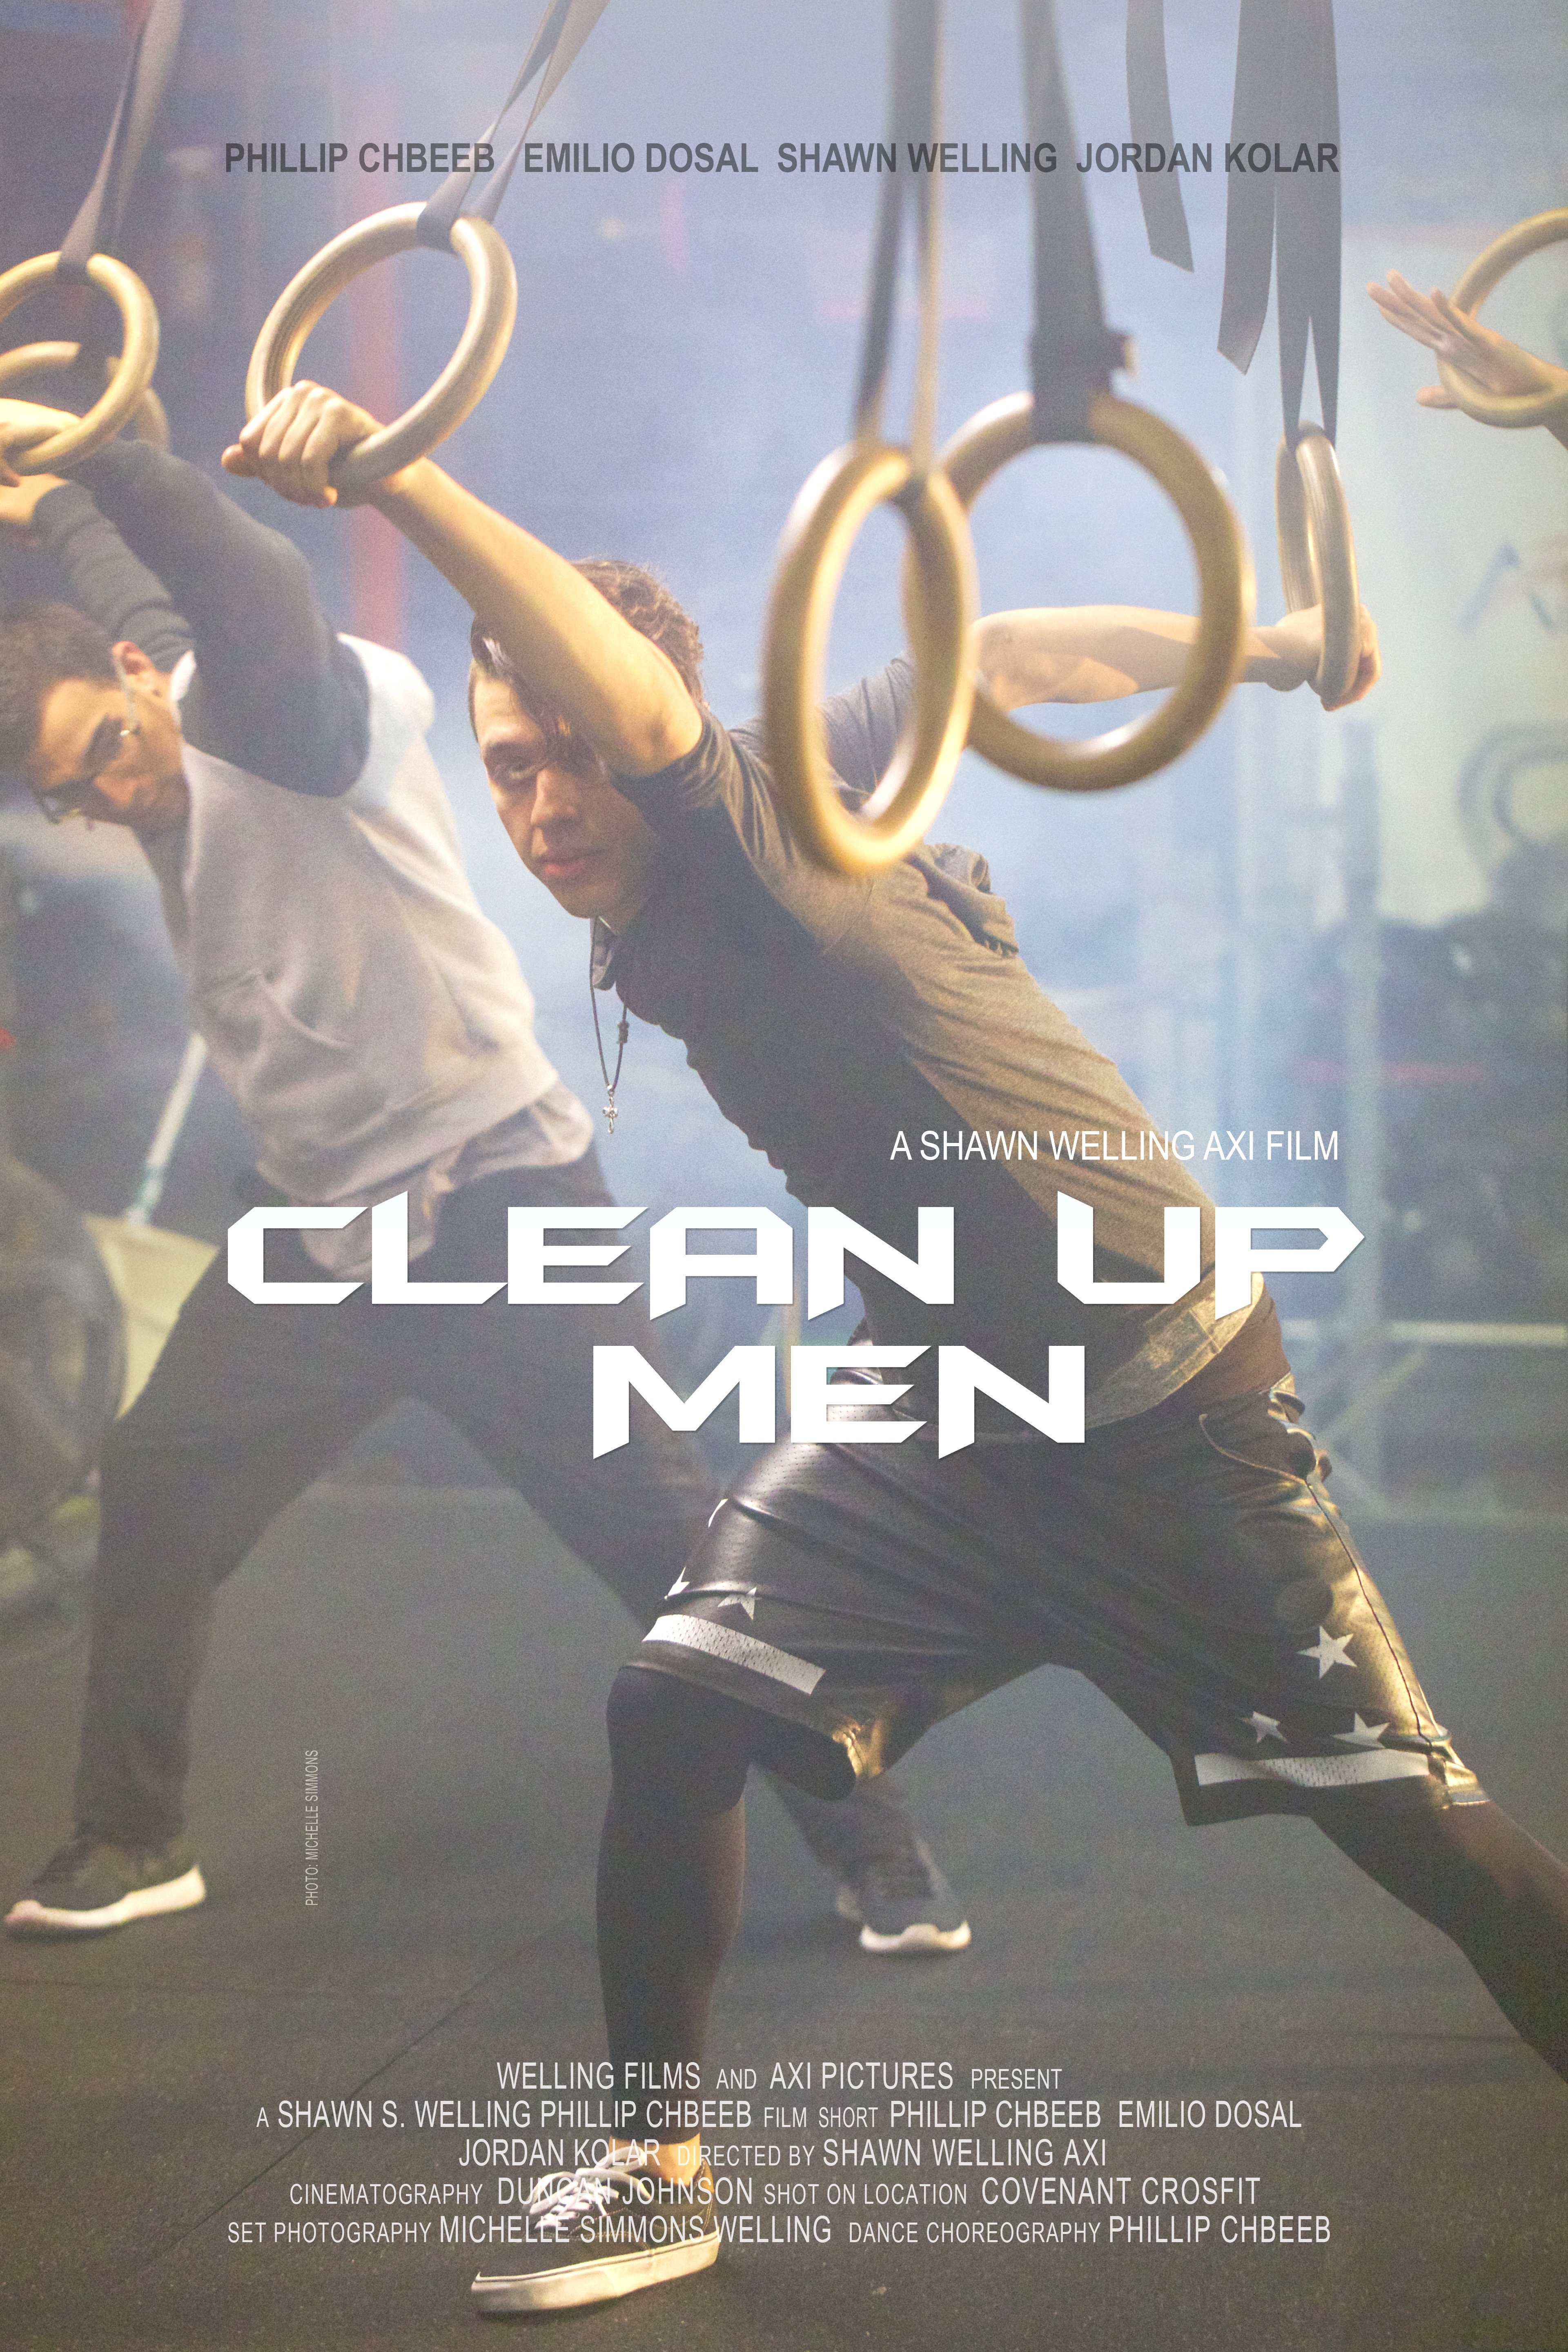 The Clean Up Man